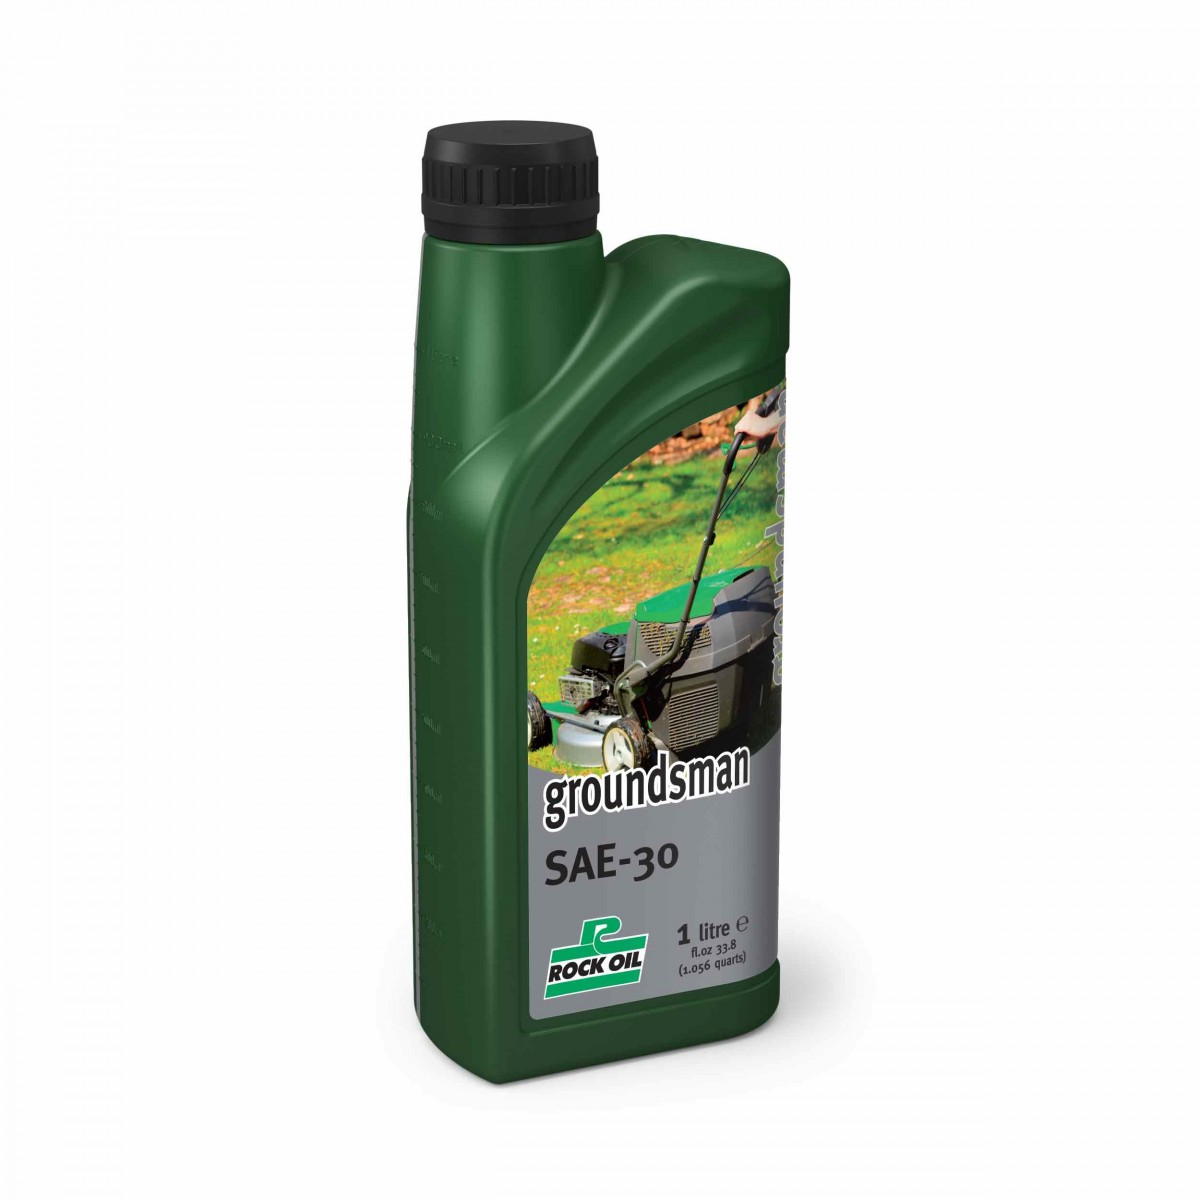 Groundsman Sae 30 Oil 1 Litre Bottle - Lawn Mower and Machin OIl (Accessories - Oil)